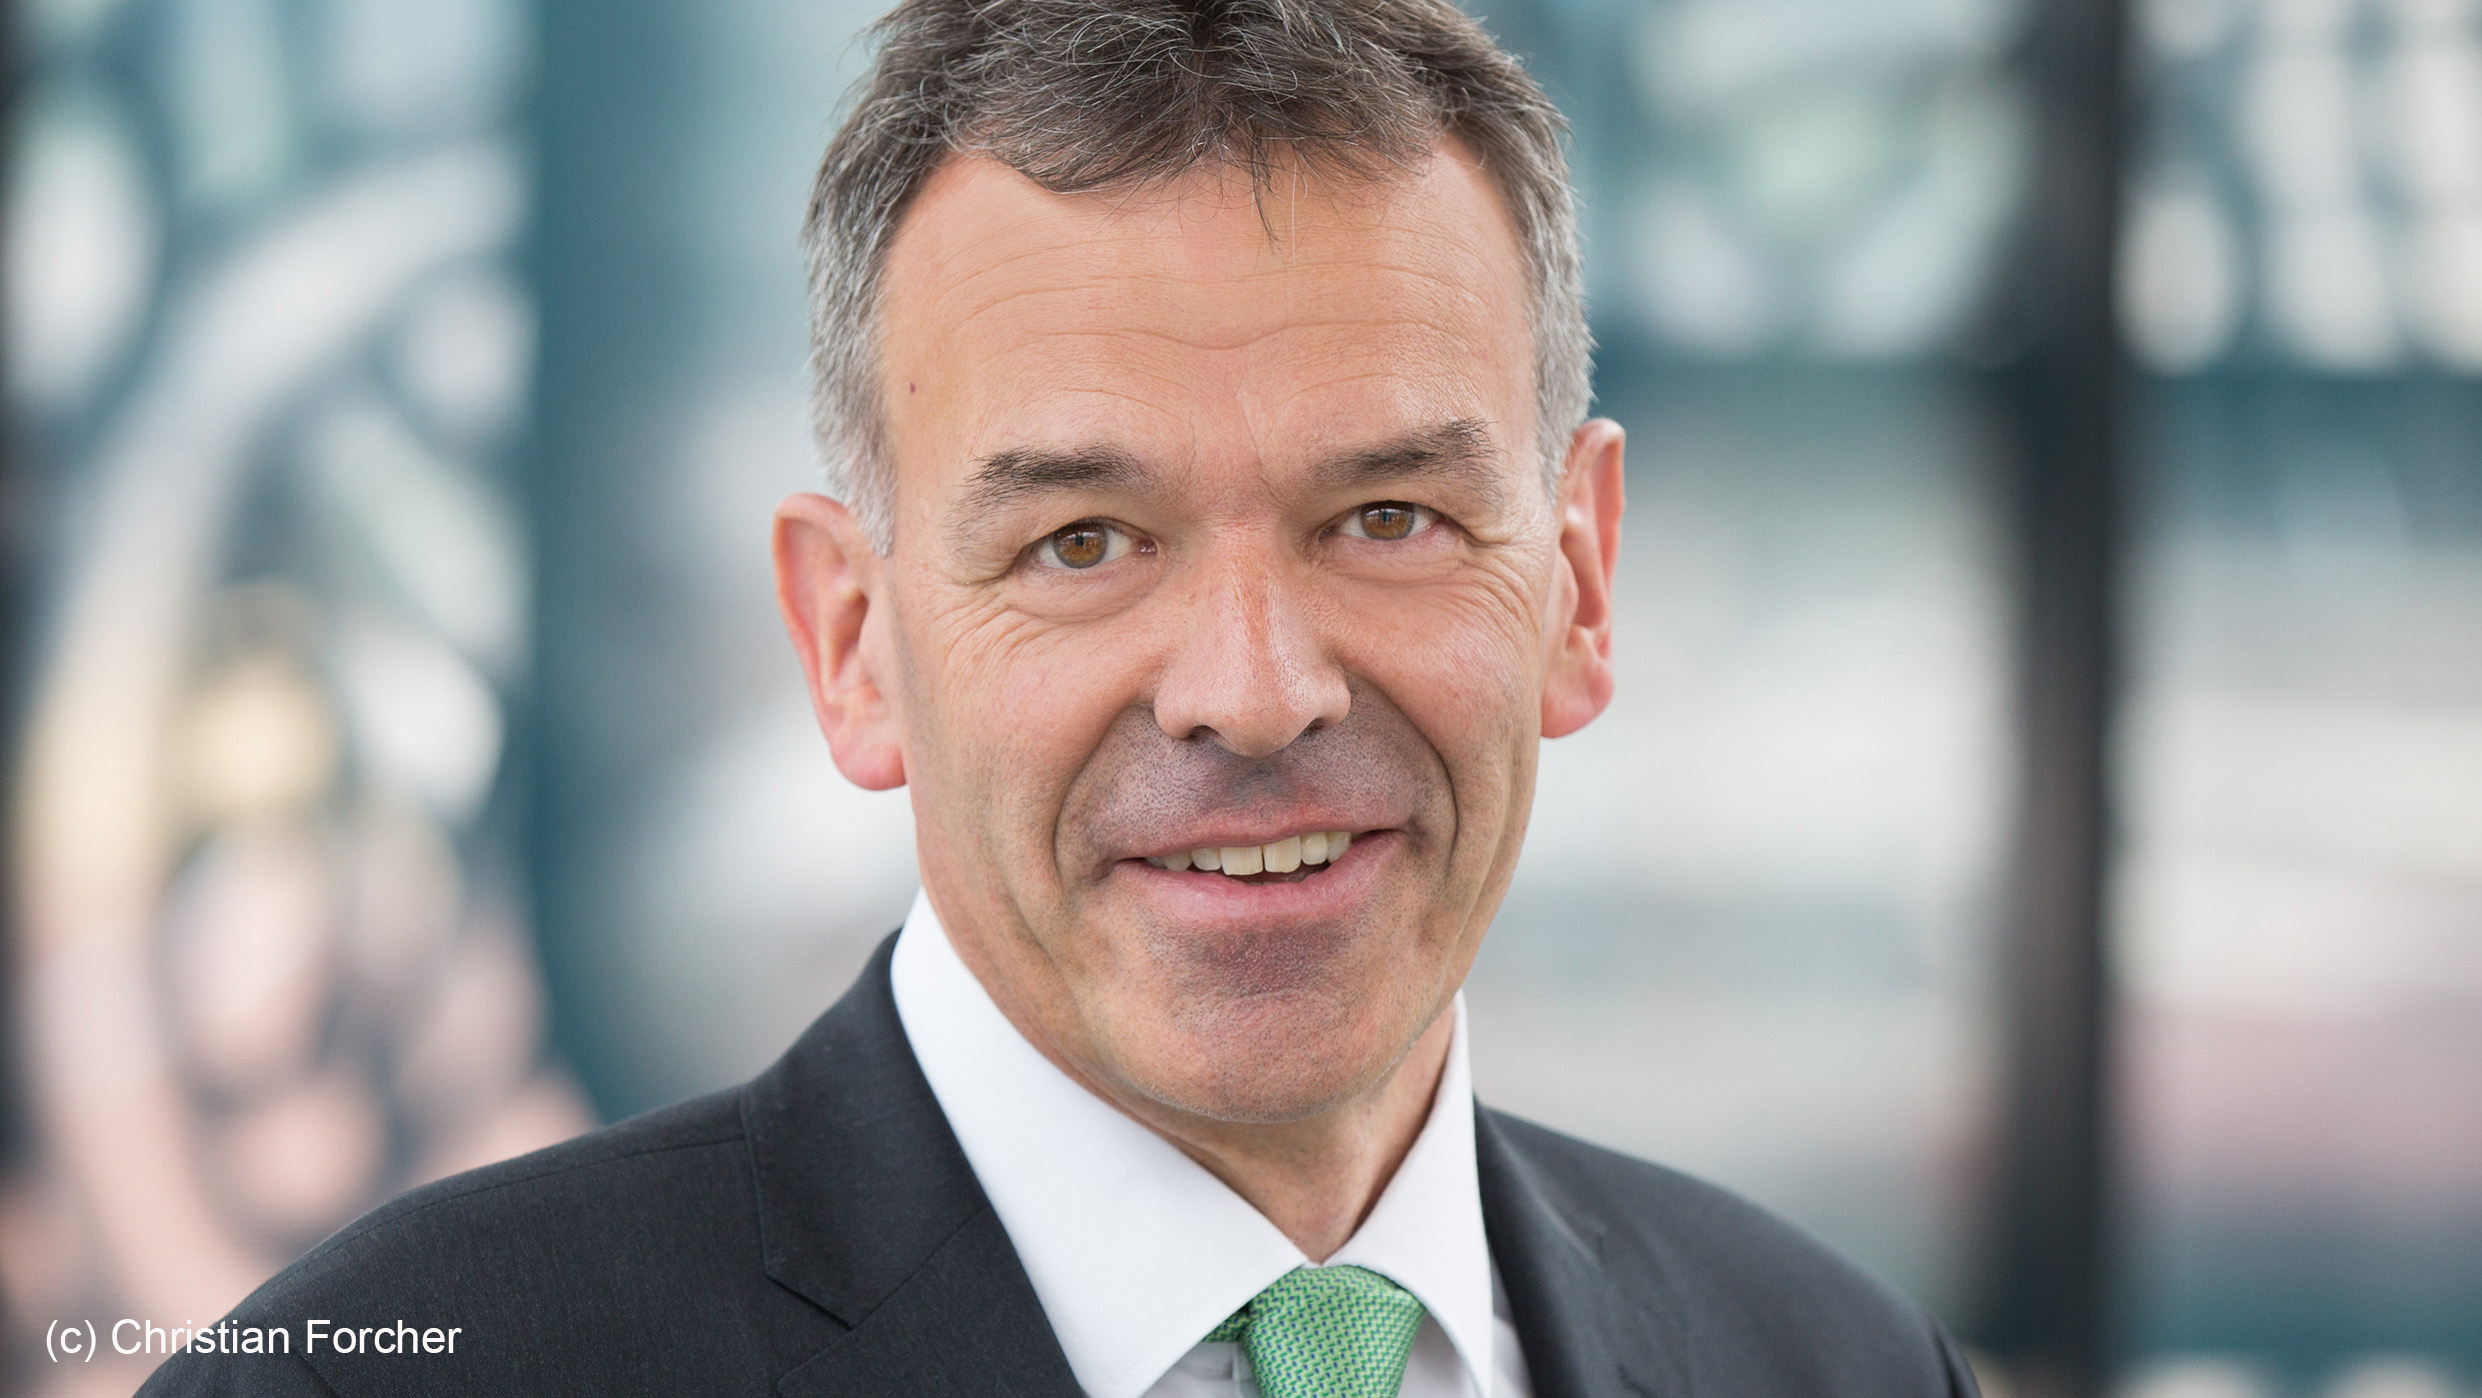 Bürgermeister Georg Willi